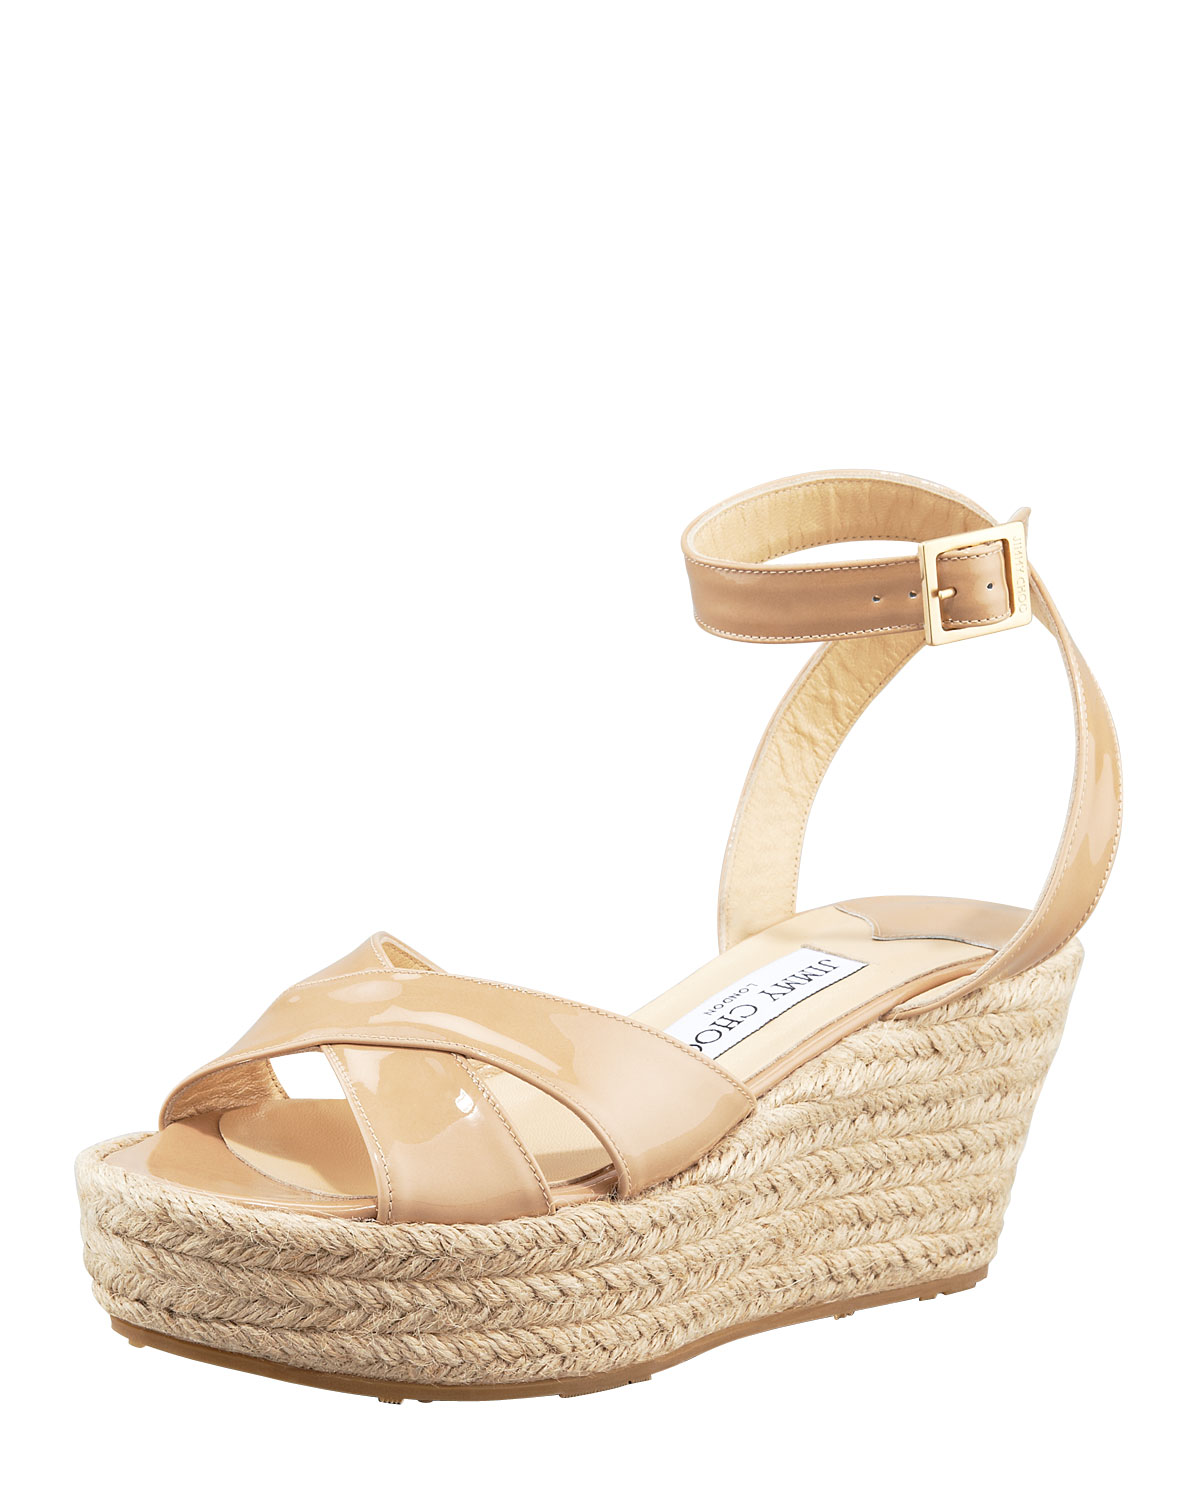 Jimmy Choo Mesh Wrap-Around Wedges cheap sale websites kvepeE9s1k